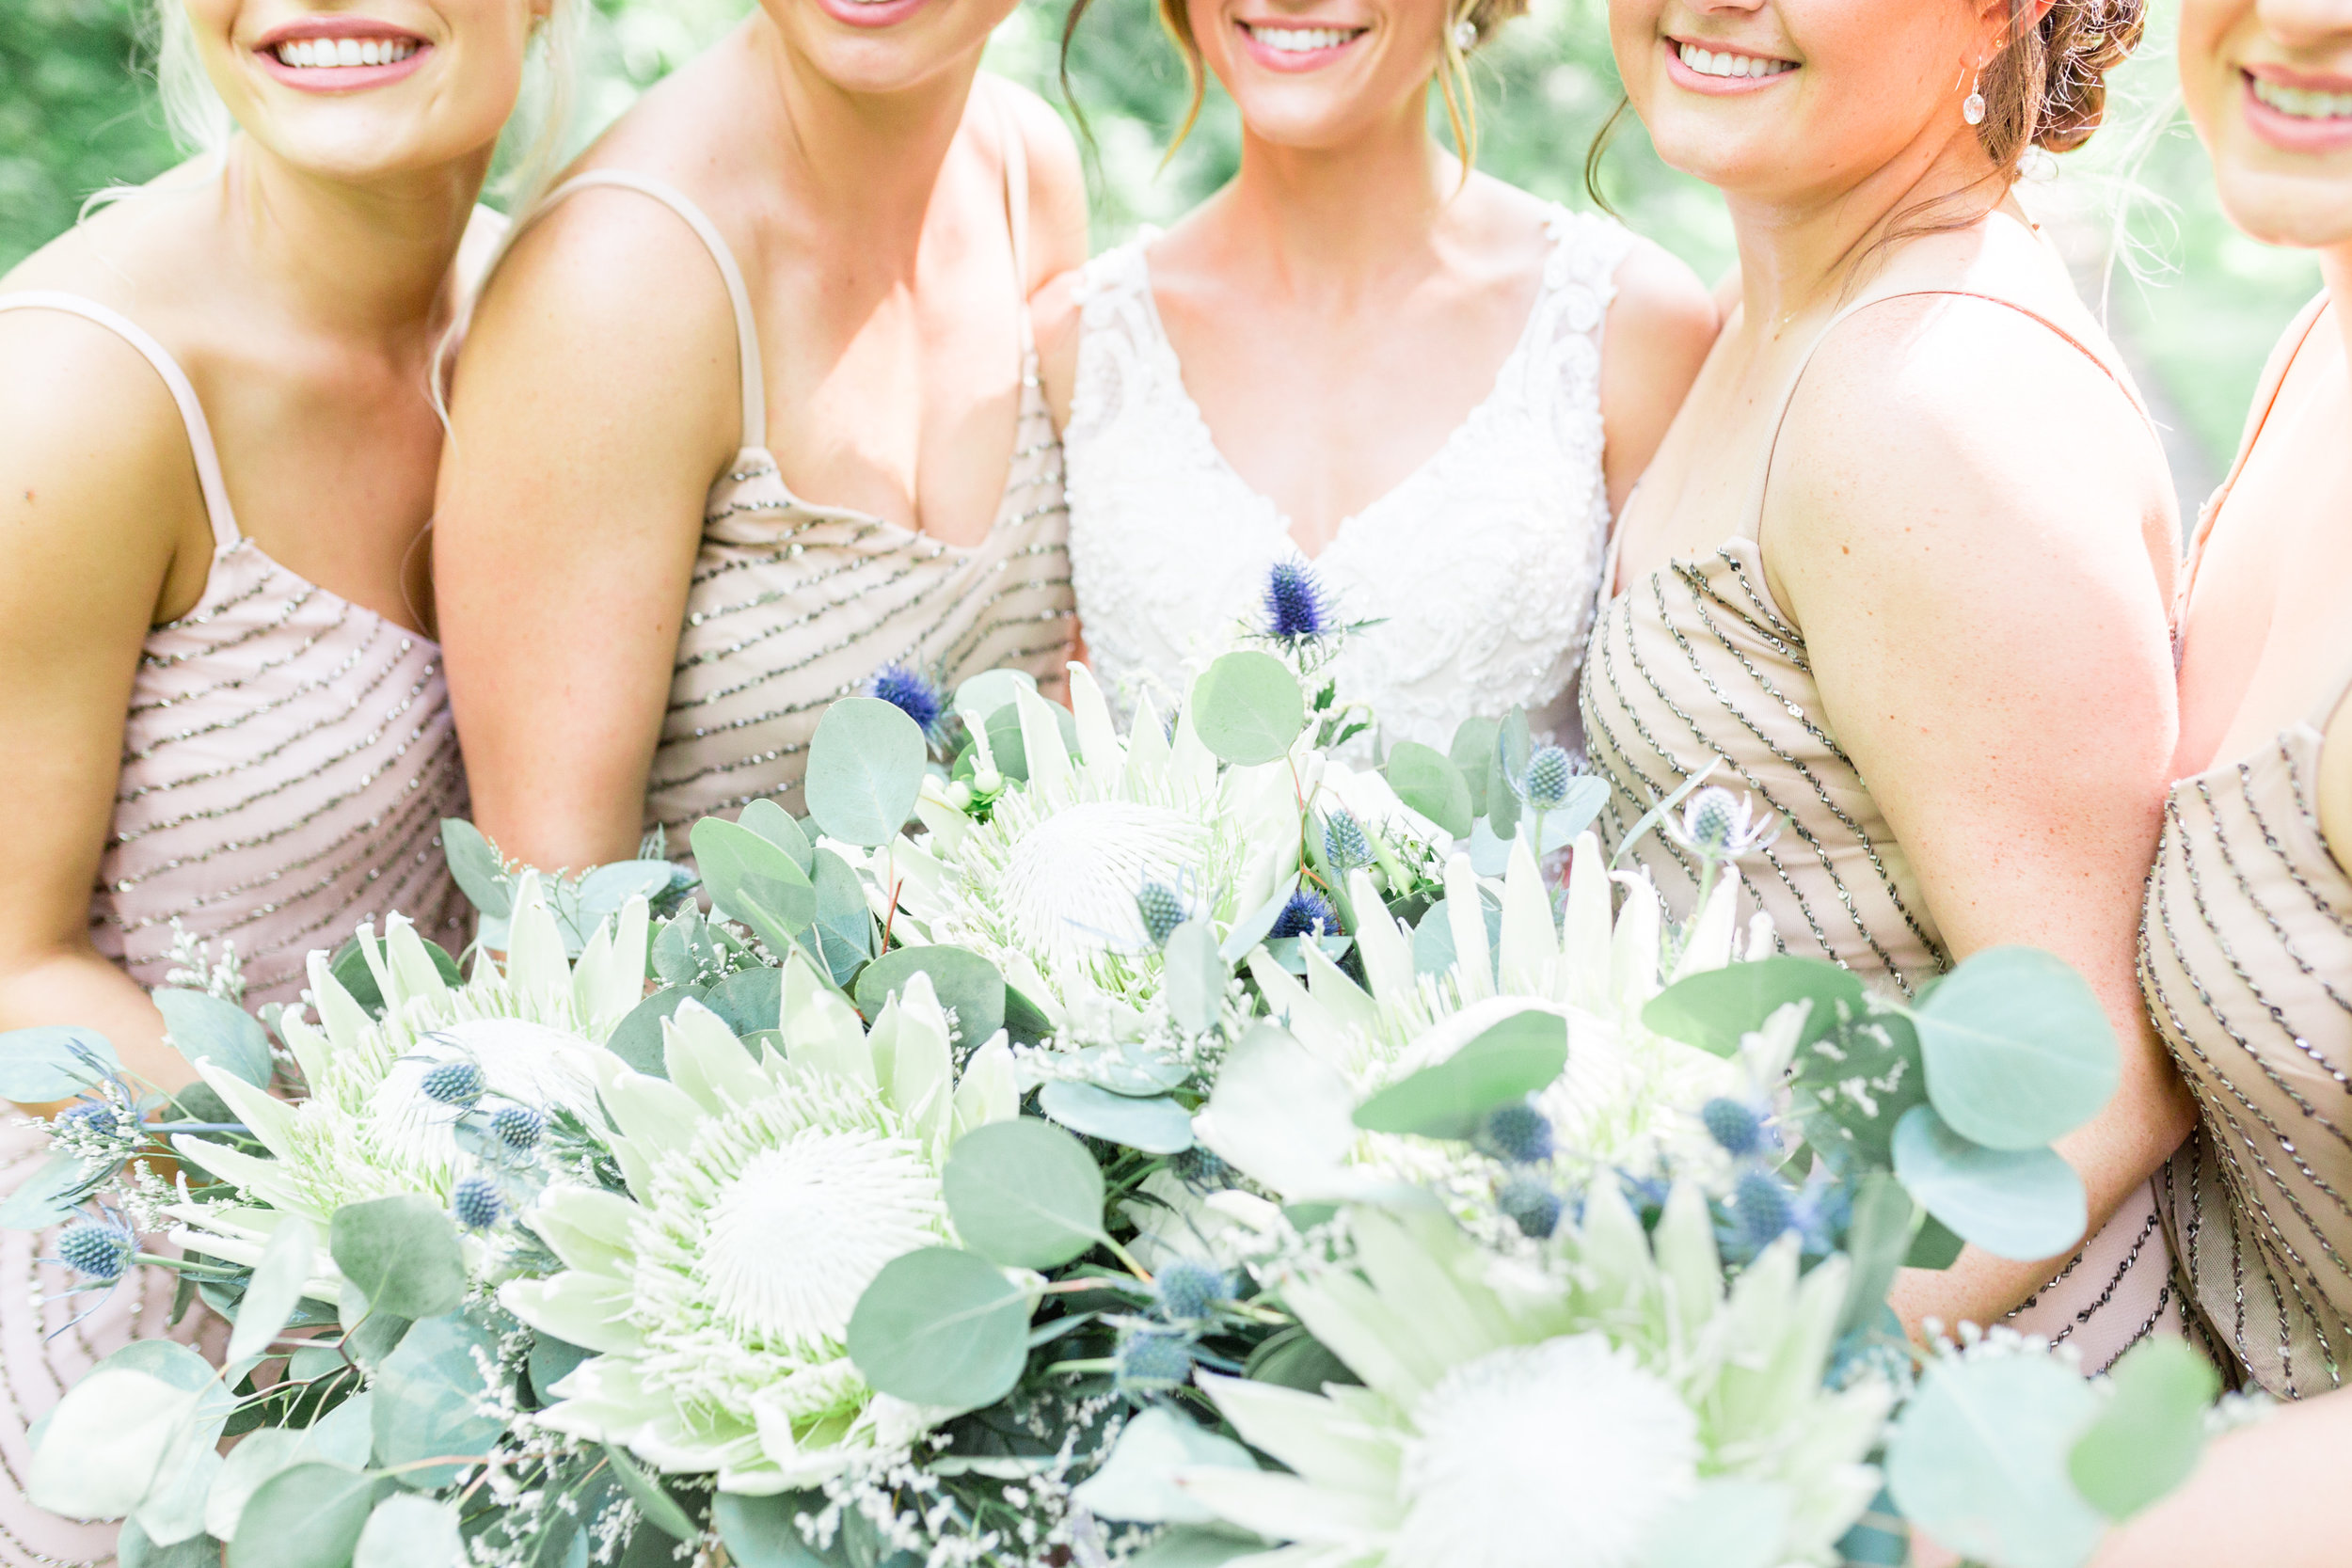 King protea wedding bouquets with greenery for Pittsburgh wedding planned by Exhale Events. Find more wedding inspiration at exhale-events.com!